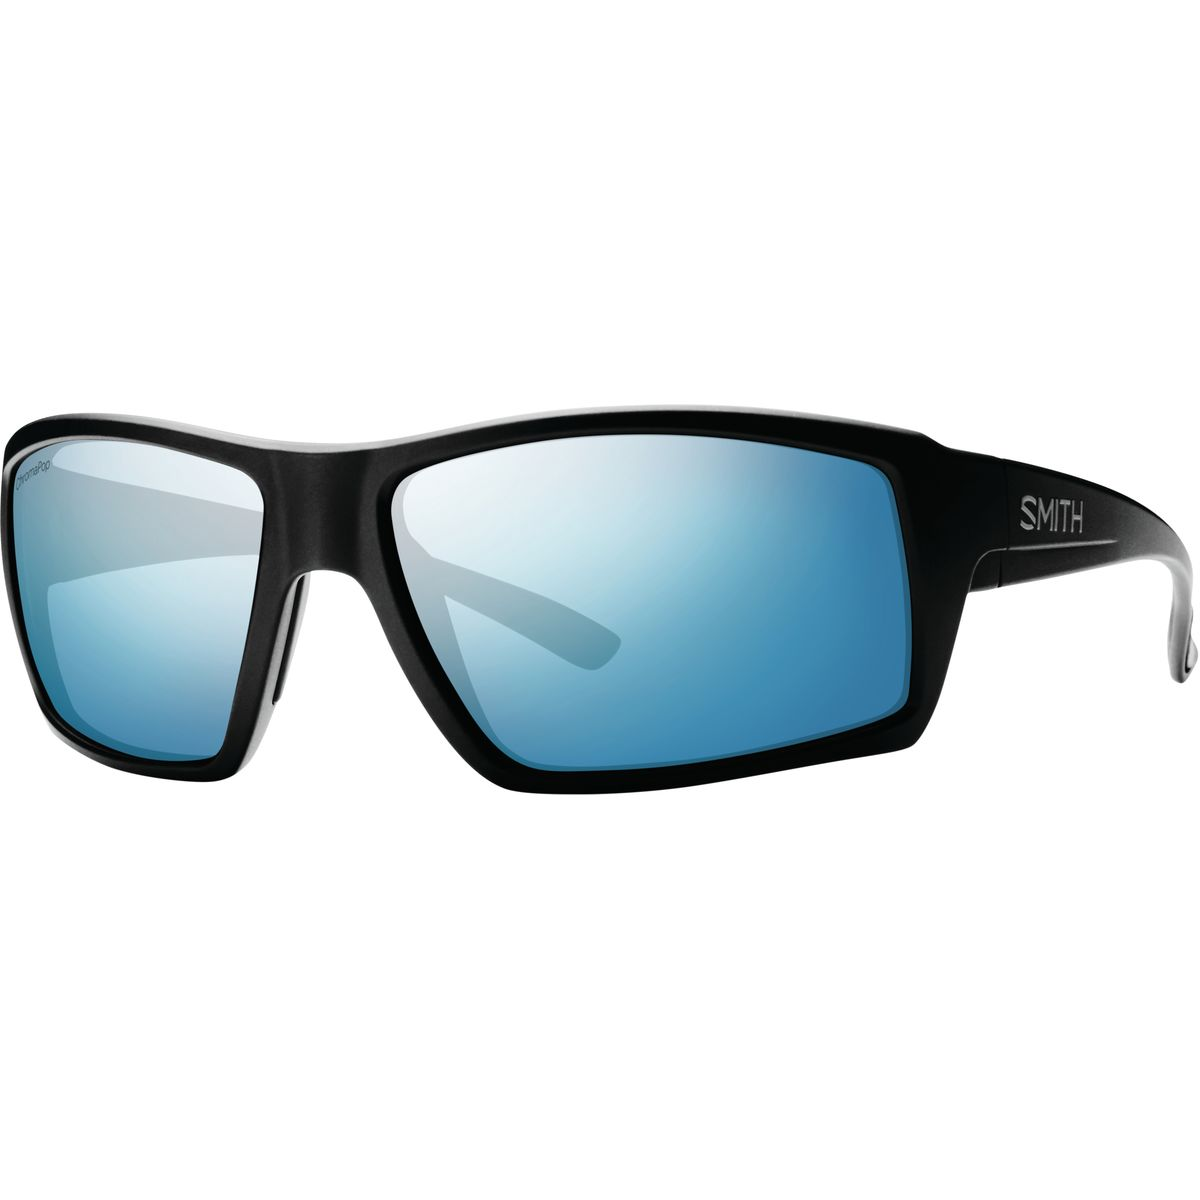 polarized sunglasses for sale y2xw  polarized sunglasses for sale